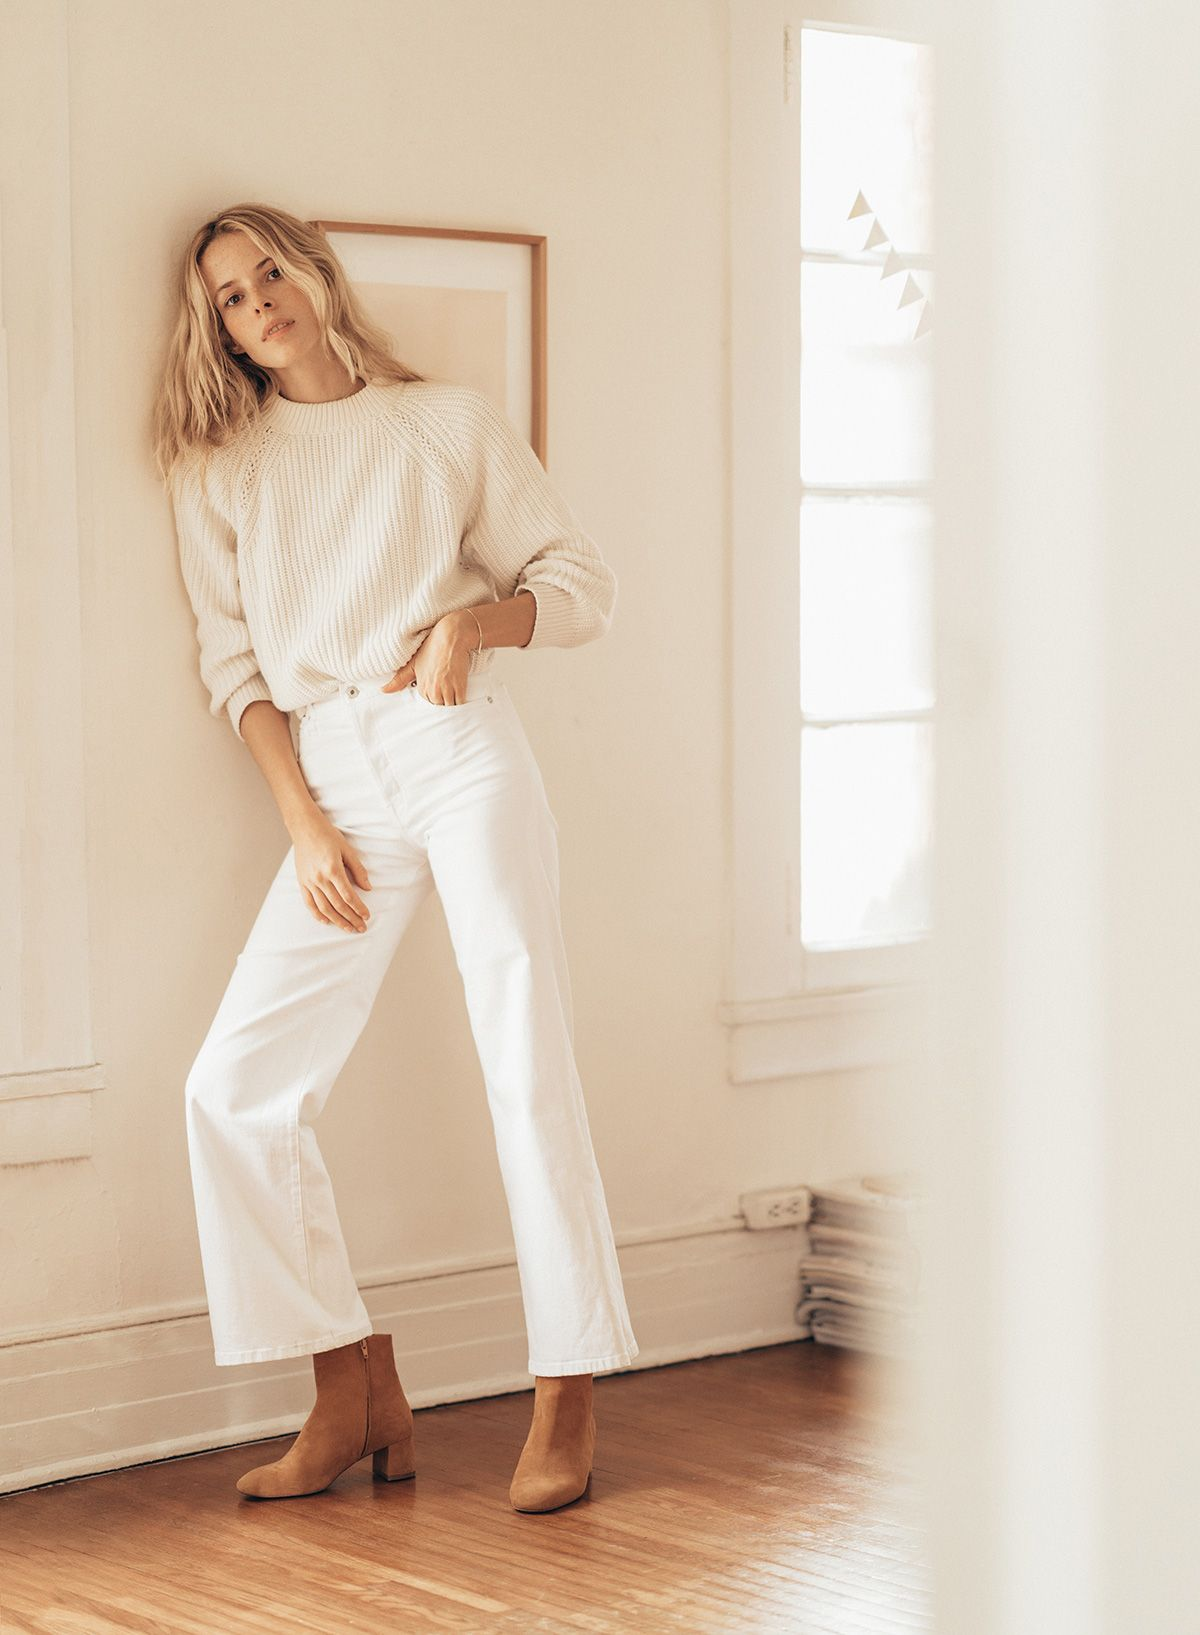 Pin by Merel Schrijver on STYLE in 2020 | Style, Fashion